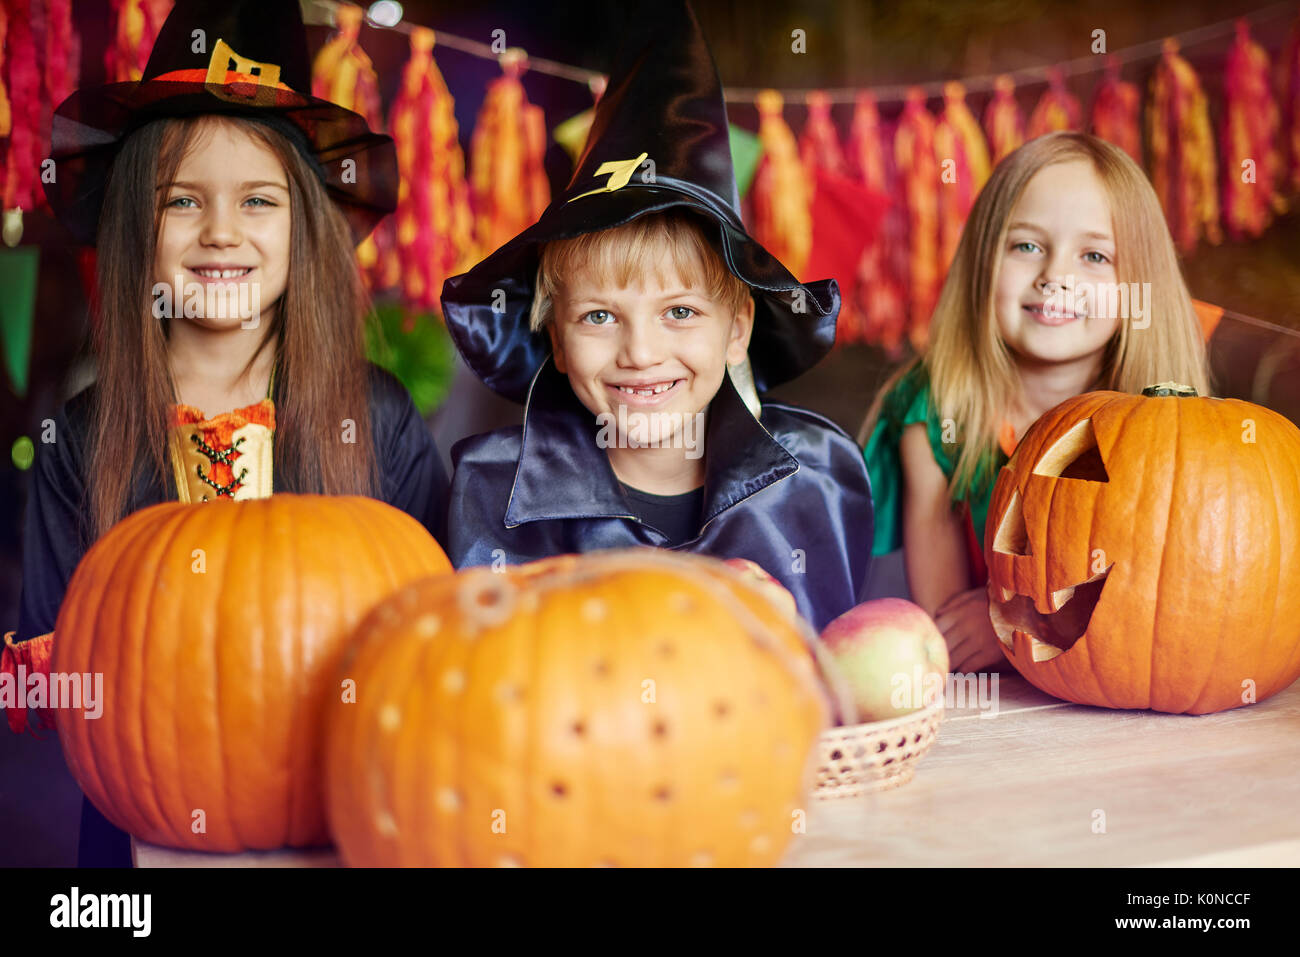 Children have great fun of carving the pumpkins - Stock Image